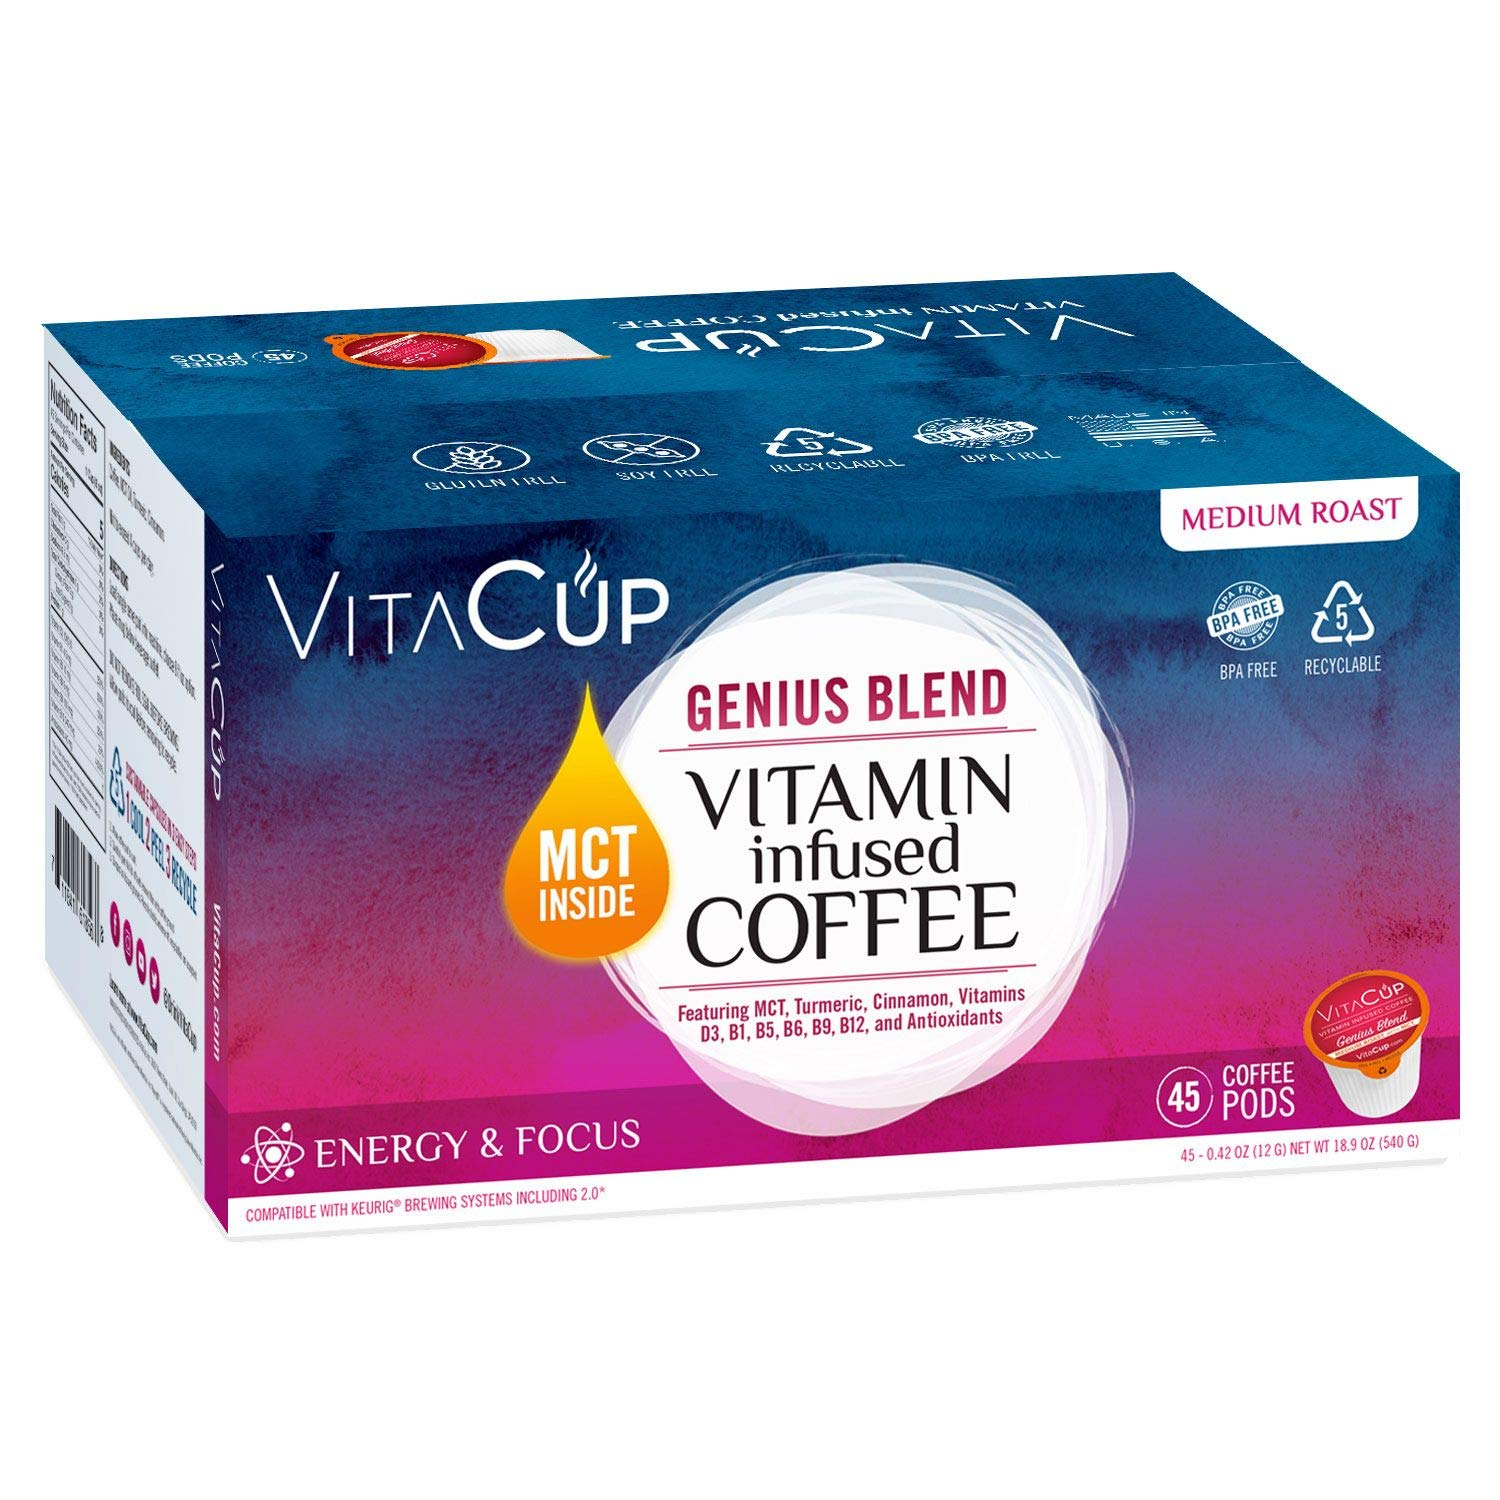 VitaCup Genius Coffee Pods 45ct with MCT, Turmeric, Vitamins, Cinnamon, Keto|Paleo|Whole30 Friendly, B12, B9, B6, B5, B1, D3, Compatible with K-Cup Brewers Including Keurig 2.0, Top Rated Cups